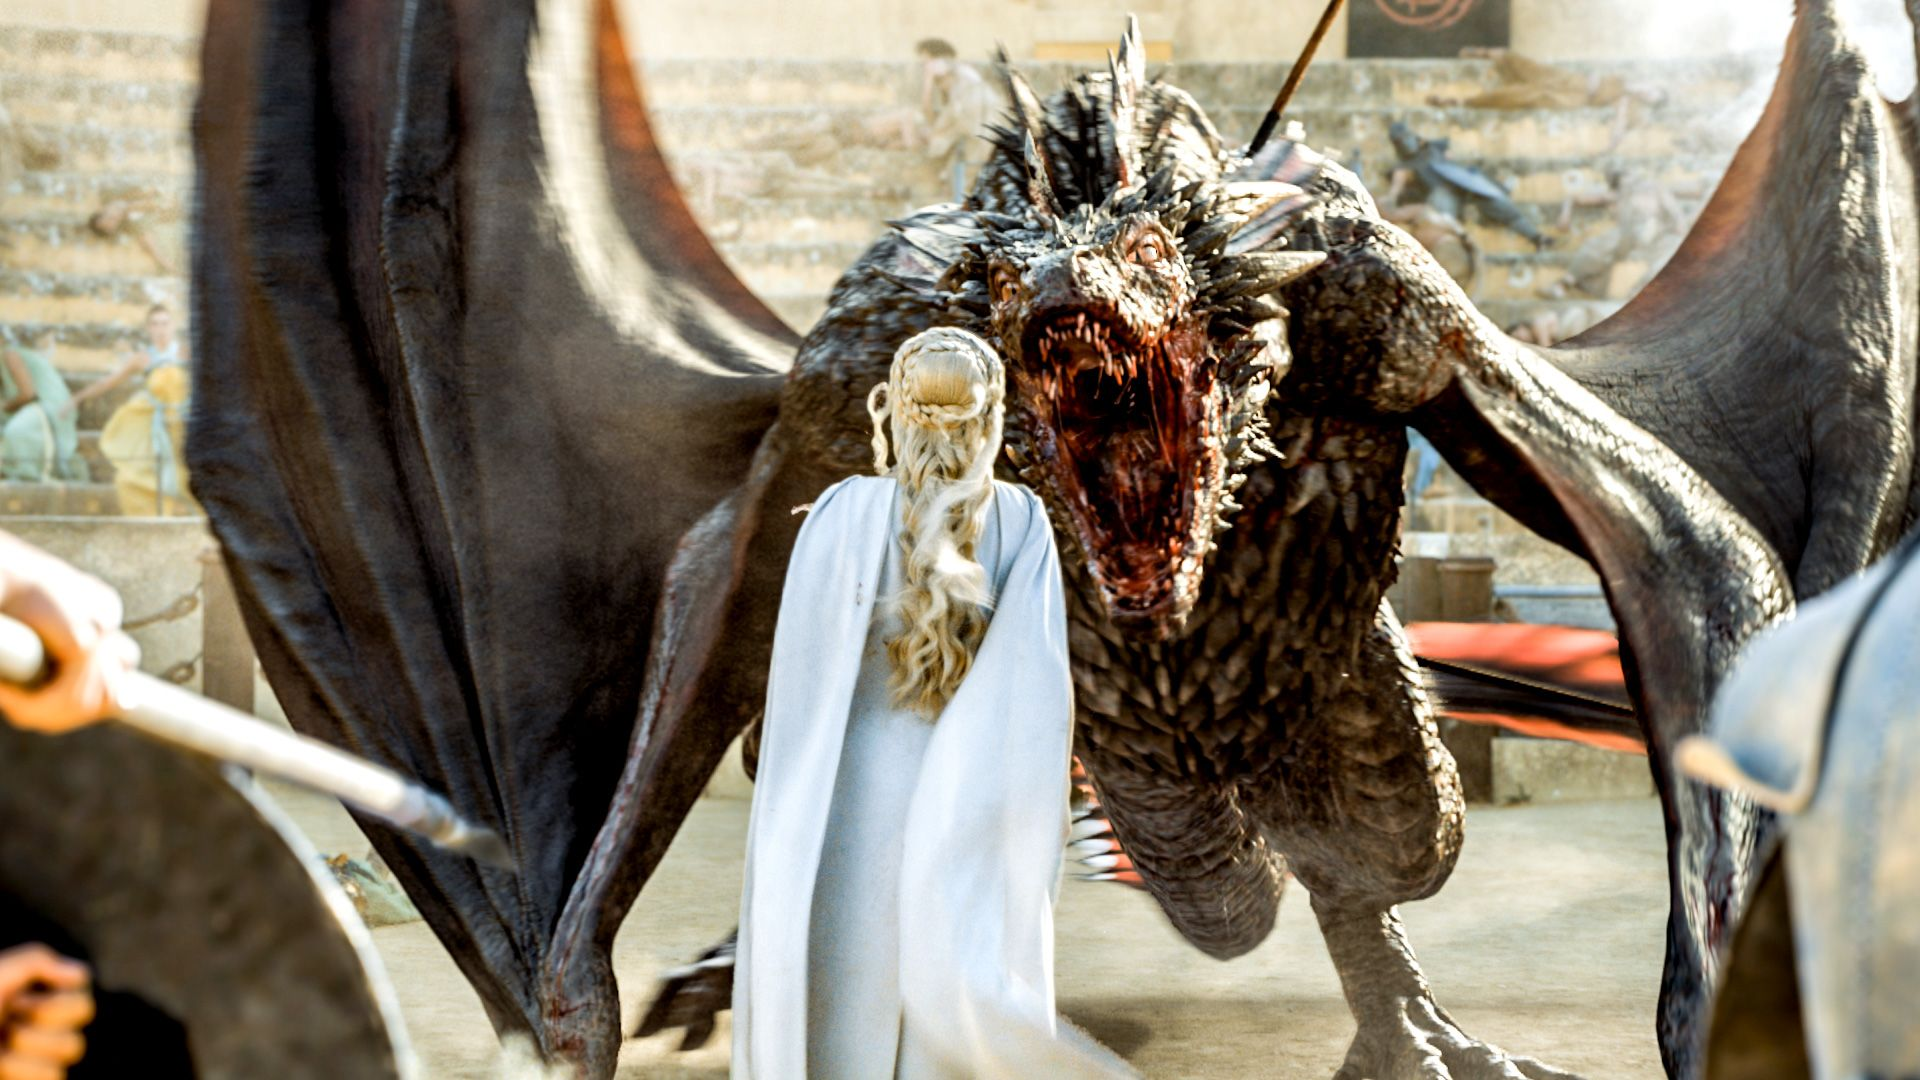 The Science Behind The Most Gruesome Deaths In Game of Thrones -  http://bit.ly/1cXDn9F